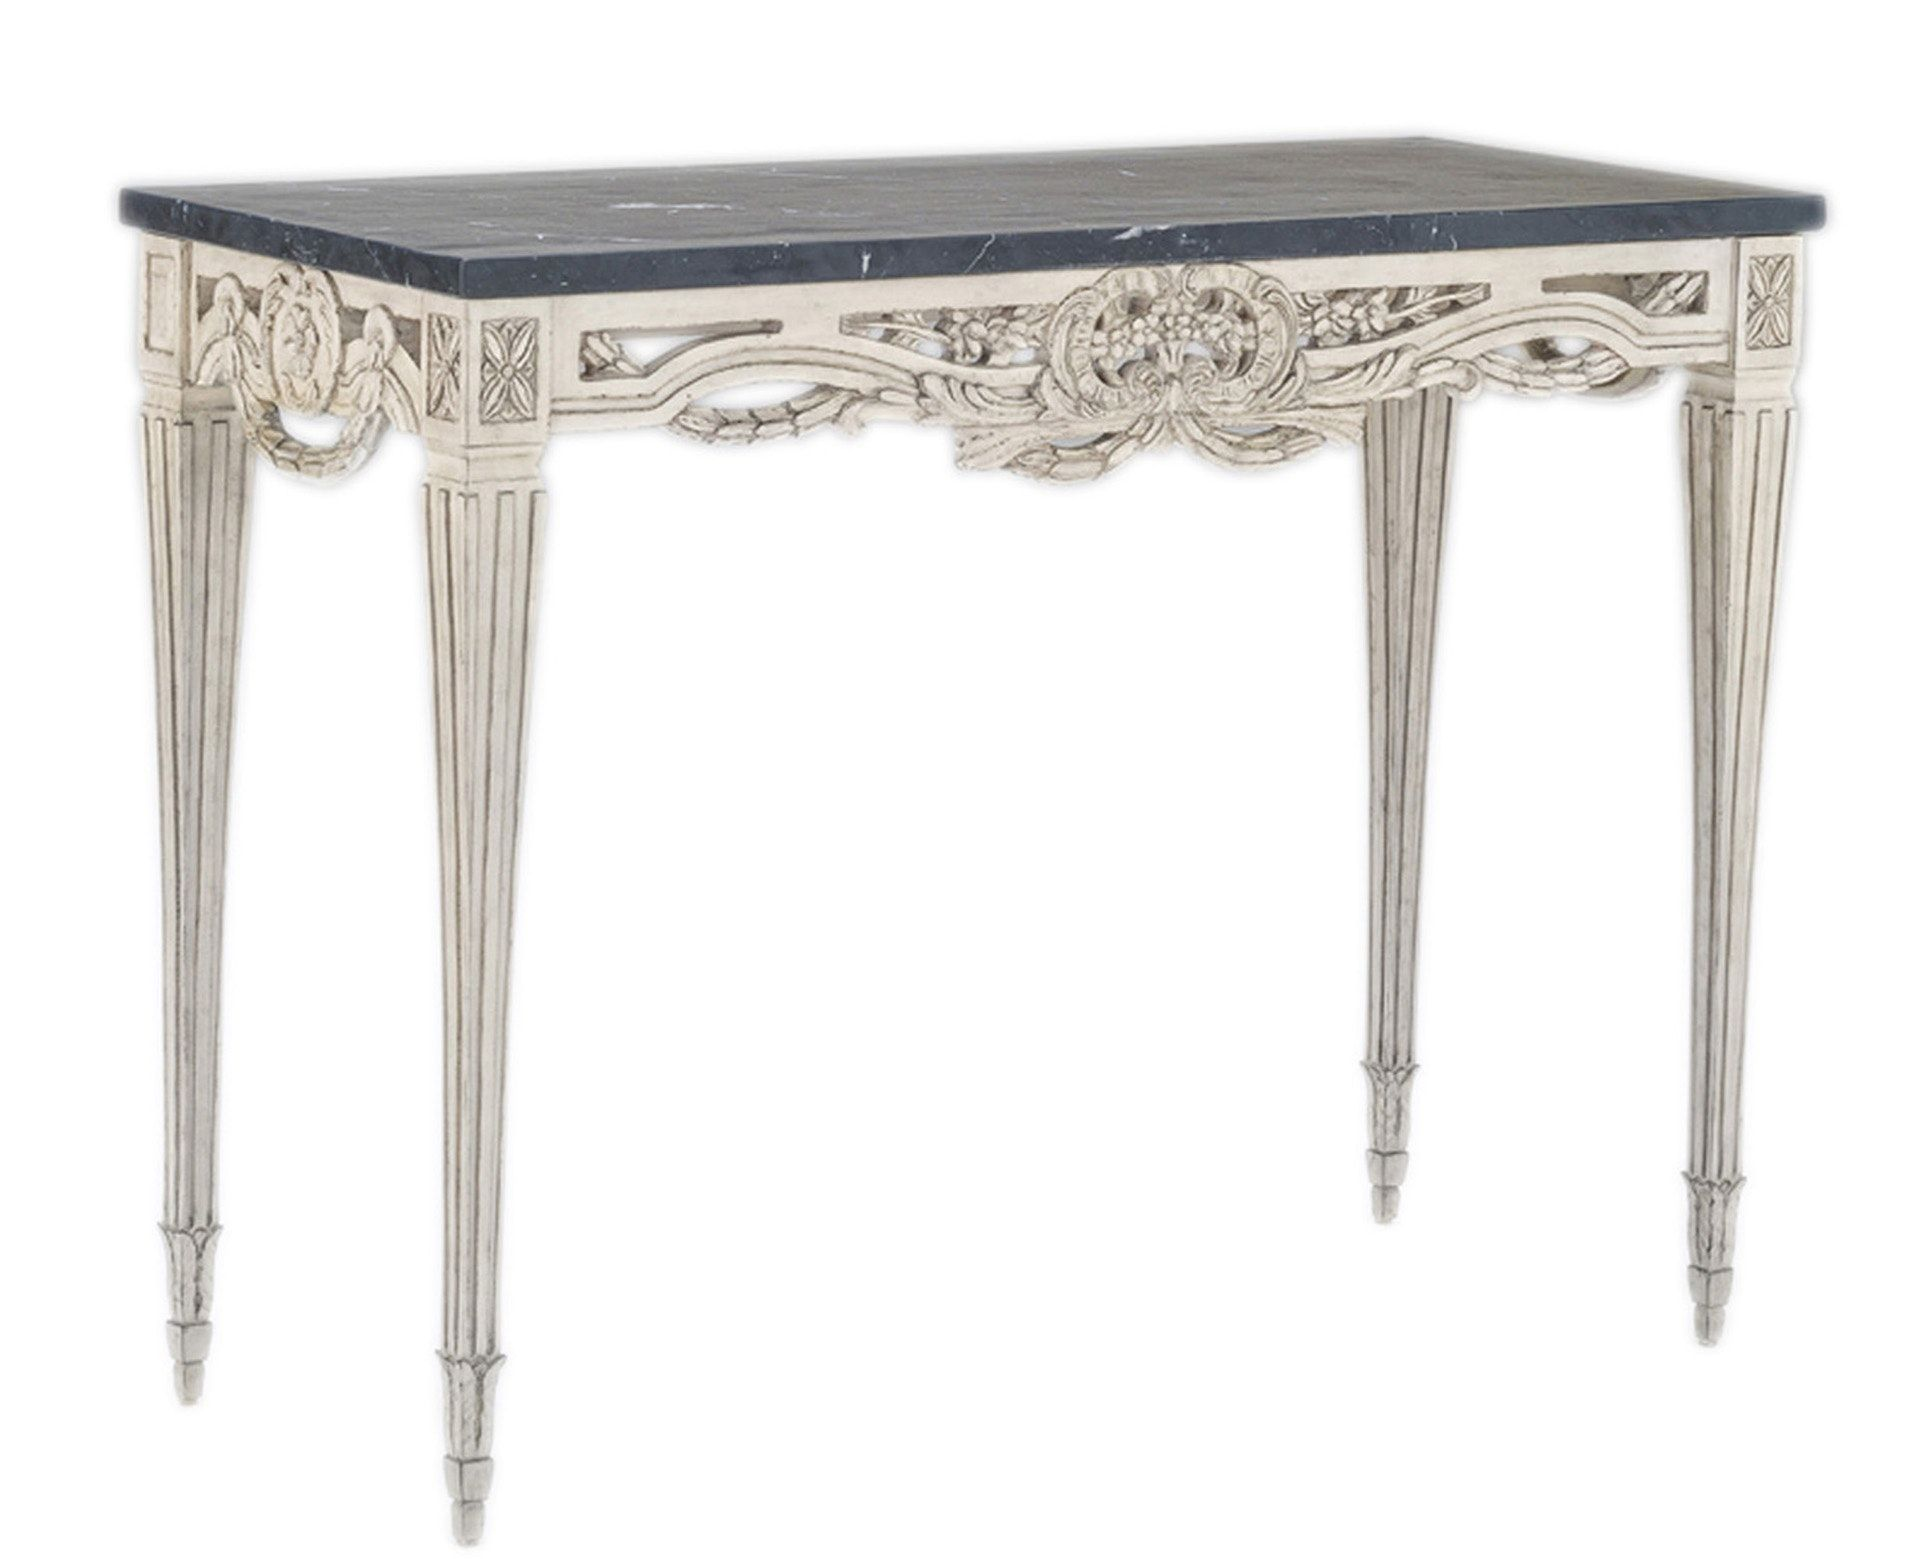 Swedish pierced rim marble top console table sc011 traditional buy swedish pierced rim marble top console table sc011 by swede collection quick ship designer geotapseo Image collections